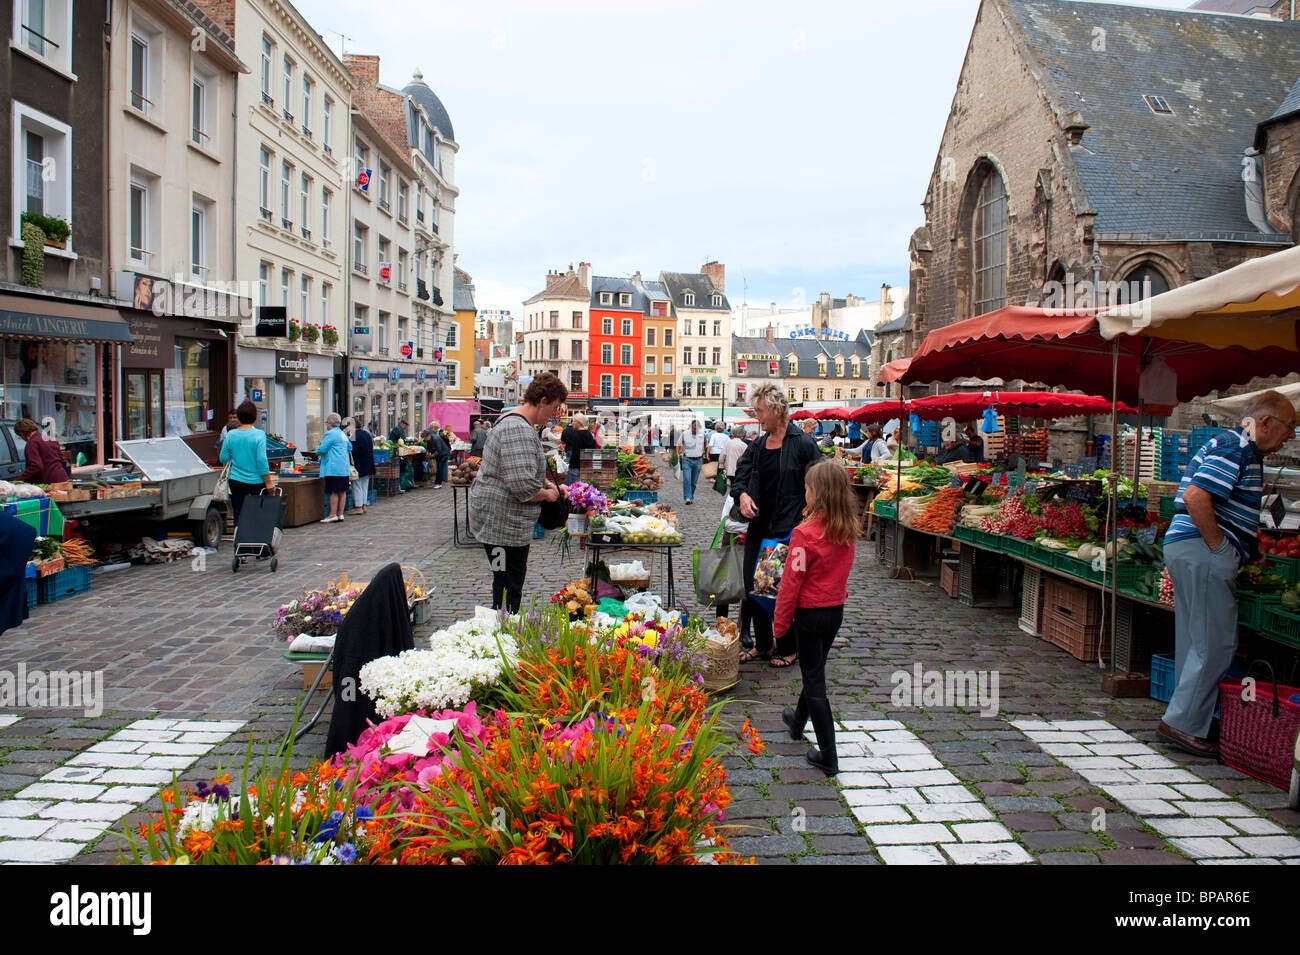 market in boulogne sur mer france stock photo 30970534 alamy. Black Bedroom Furniture Sets. Home Design Ideas